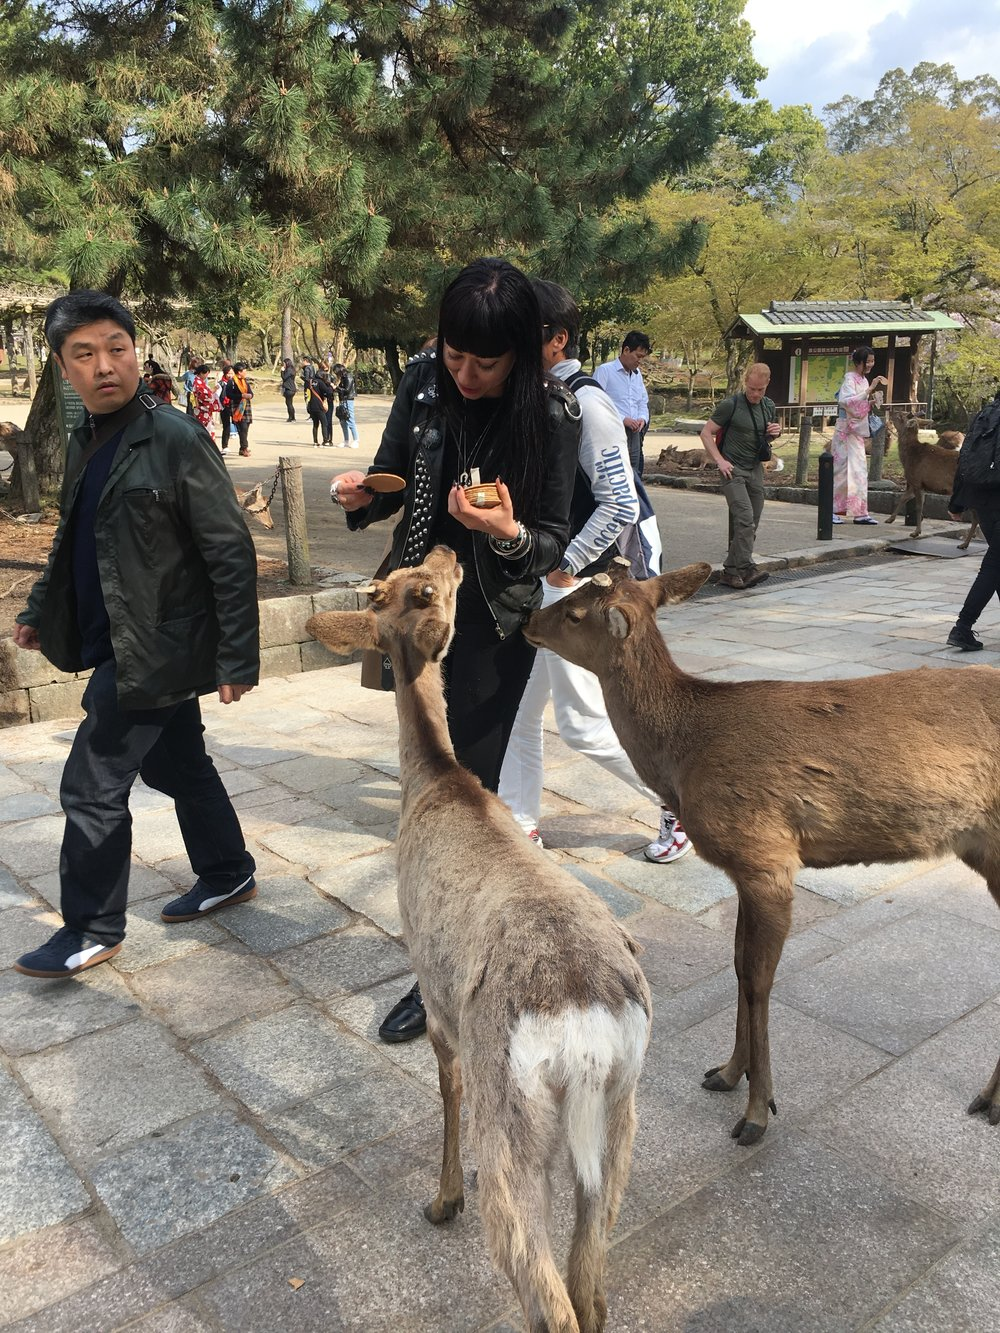 Getting checked out & feeding deer in Nara